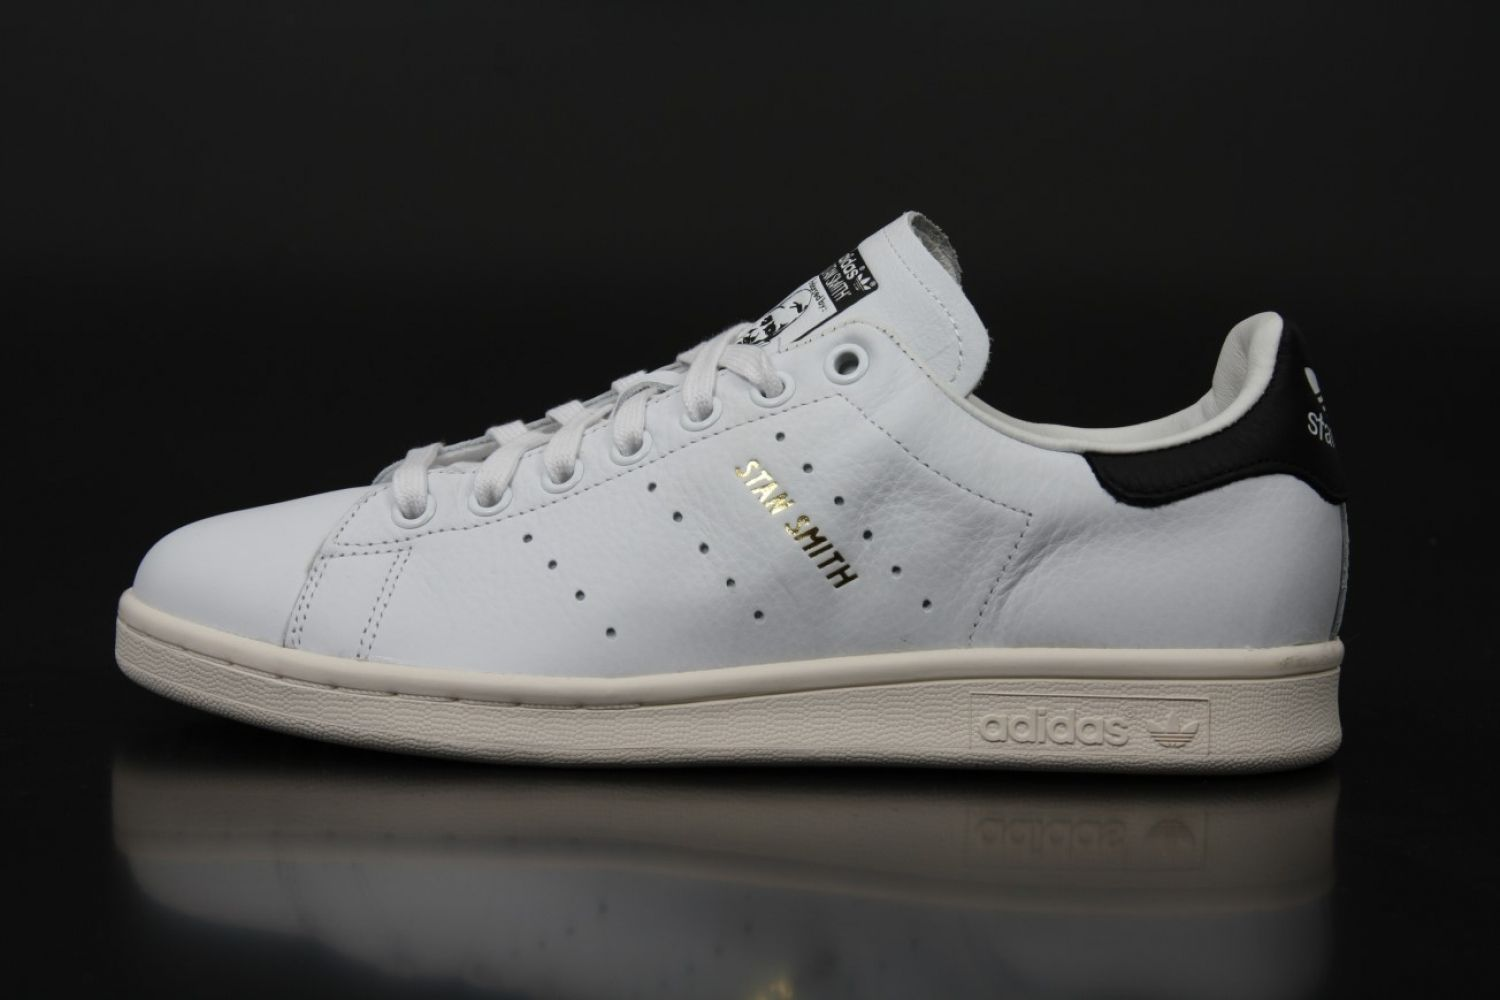 Adidas - Adidas Stan Smith Footwear White Core Black Sneaker S75076 -  Fahrenheitstore